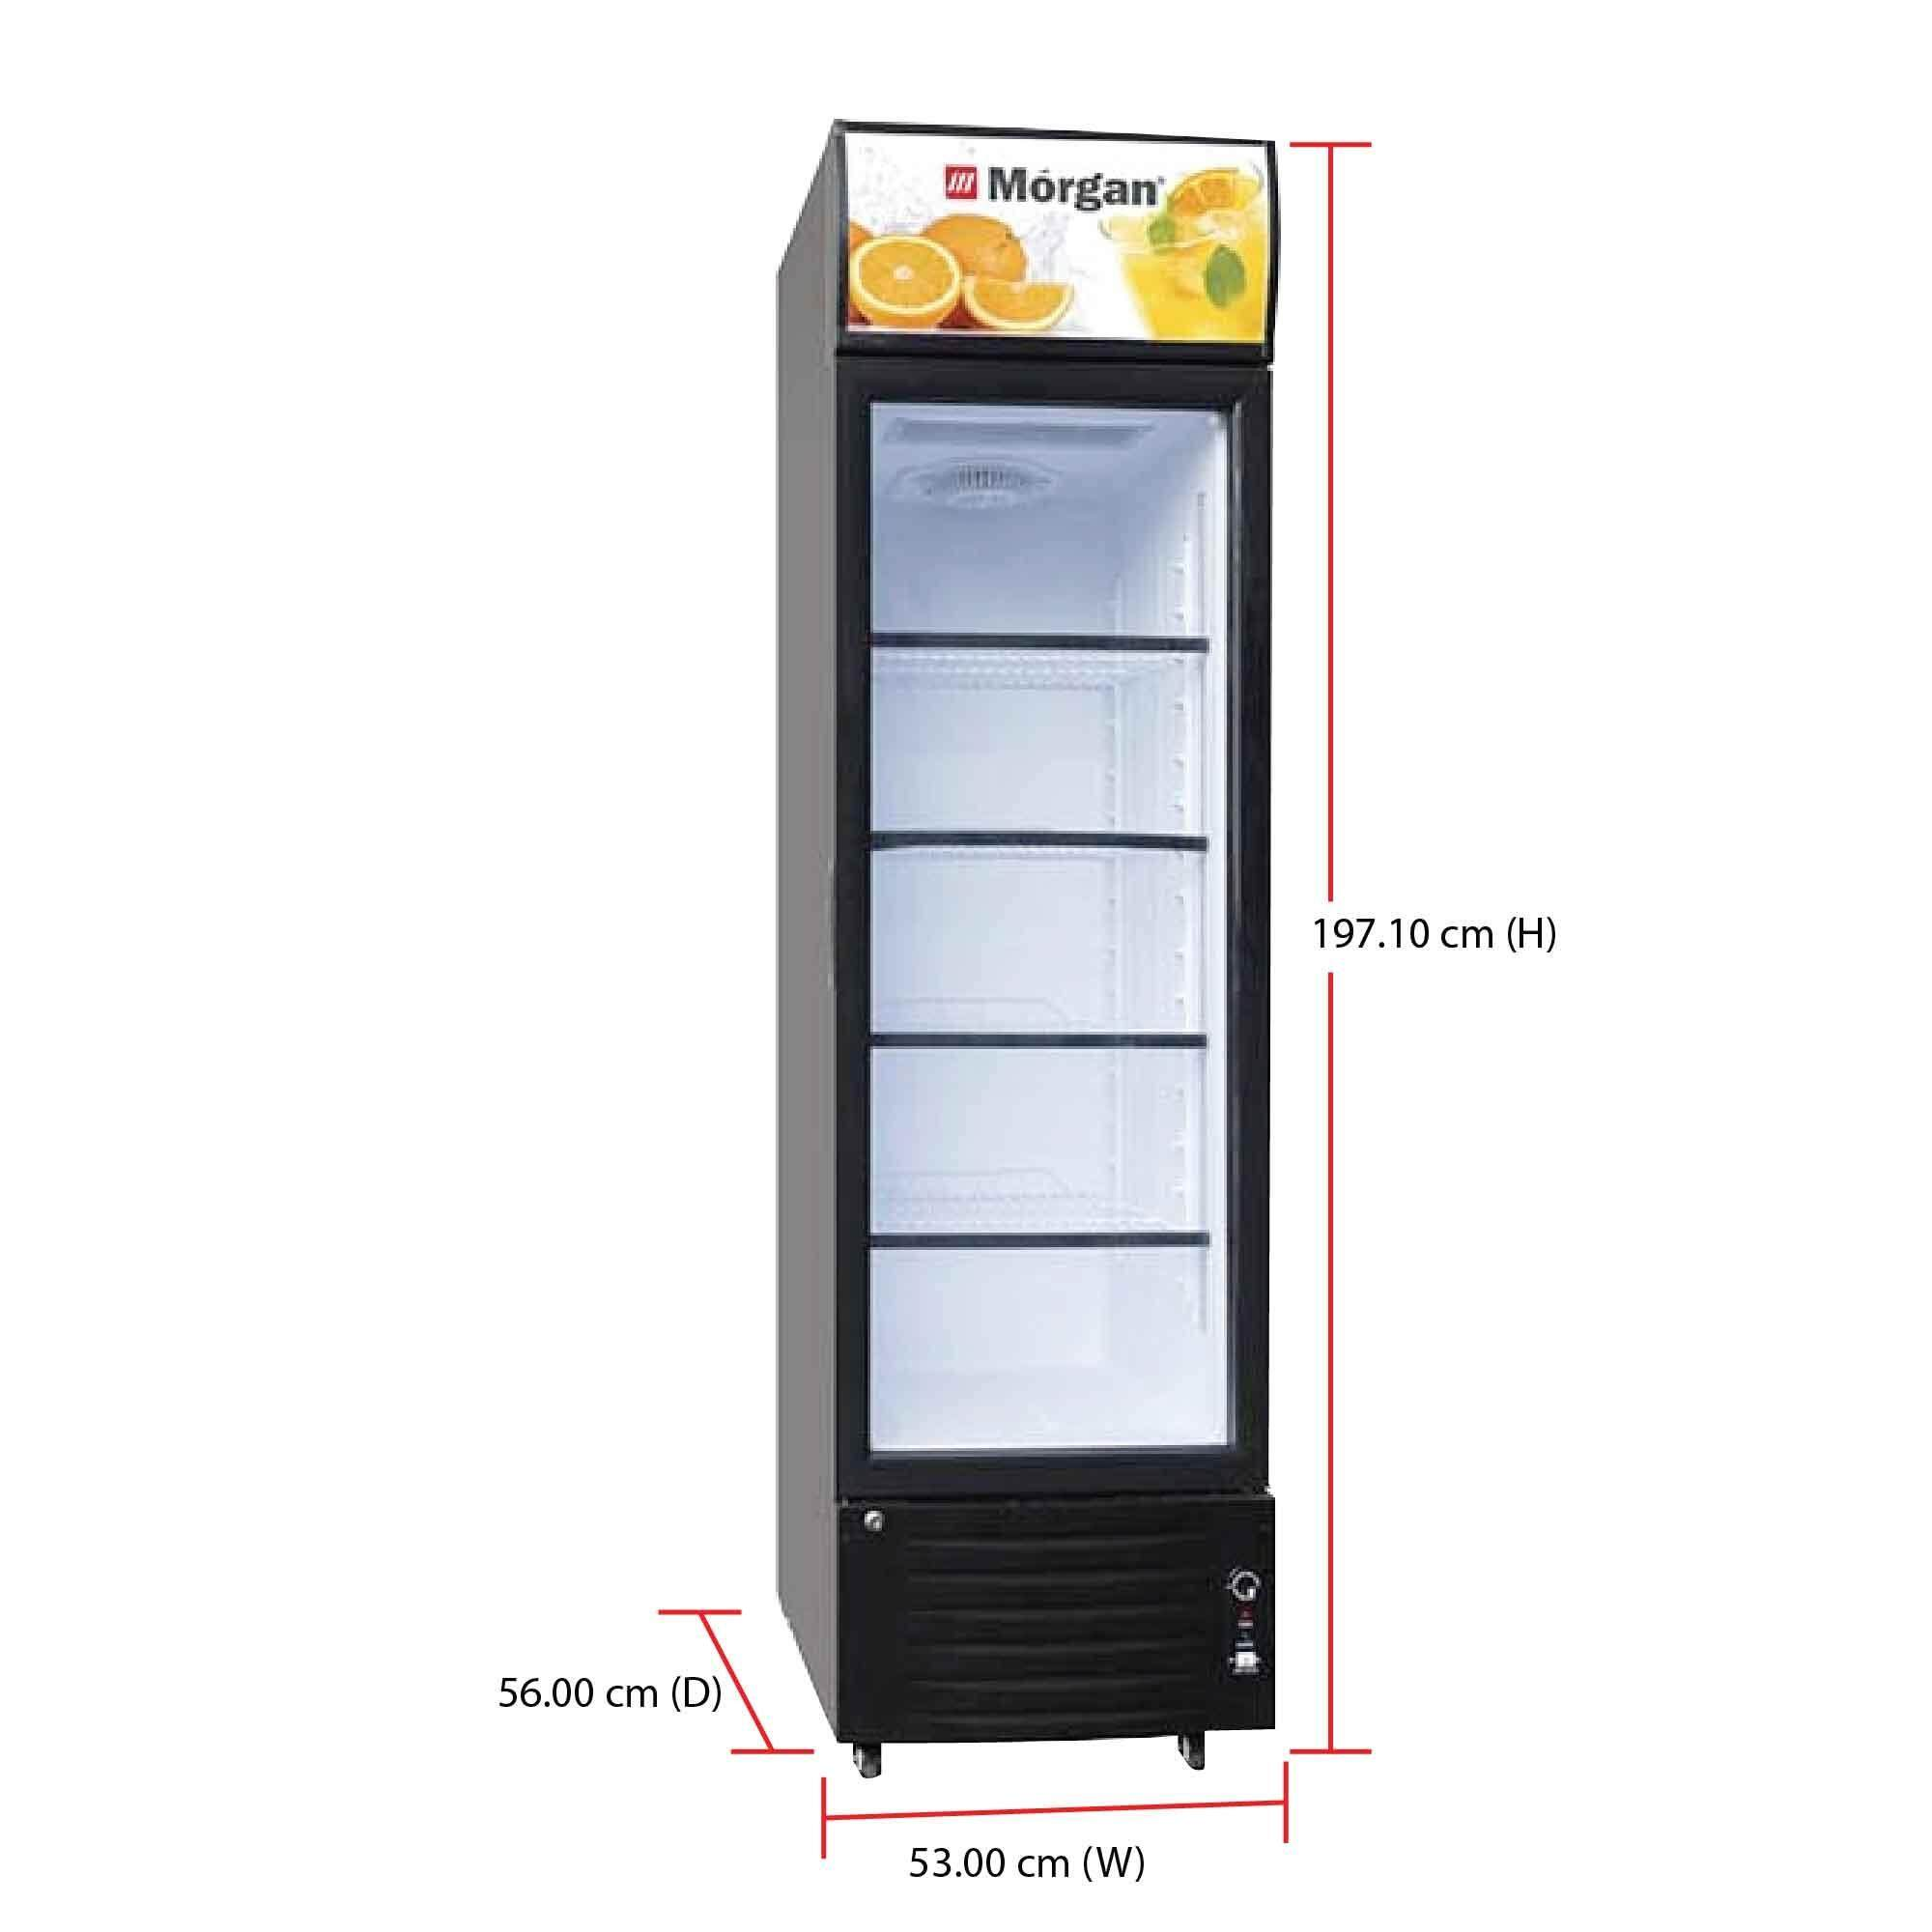 New Refrigerator Price Morgan Showcase Fridge With Key Lock Mcs 288d 238l 2018 New Model